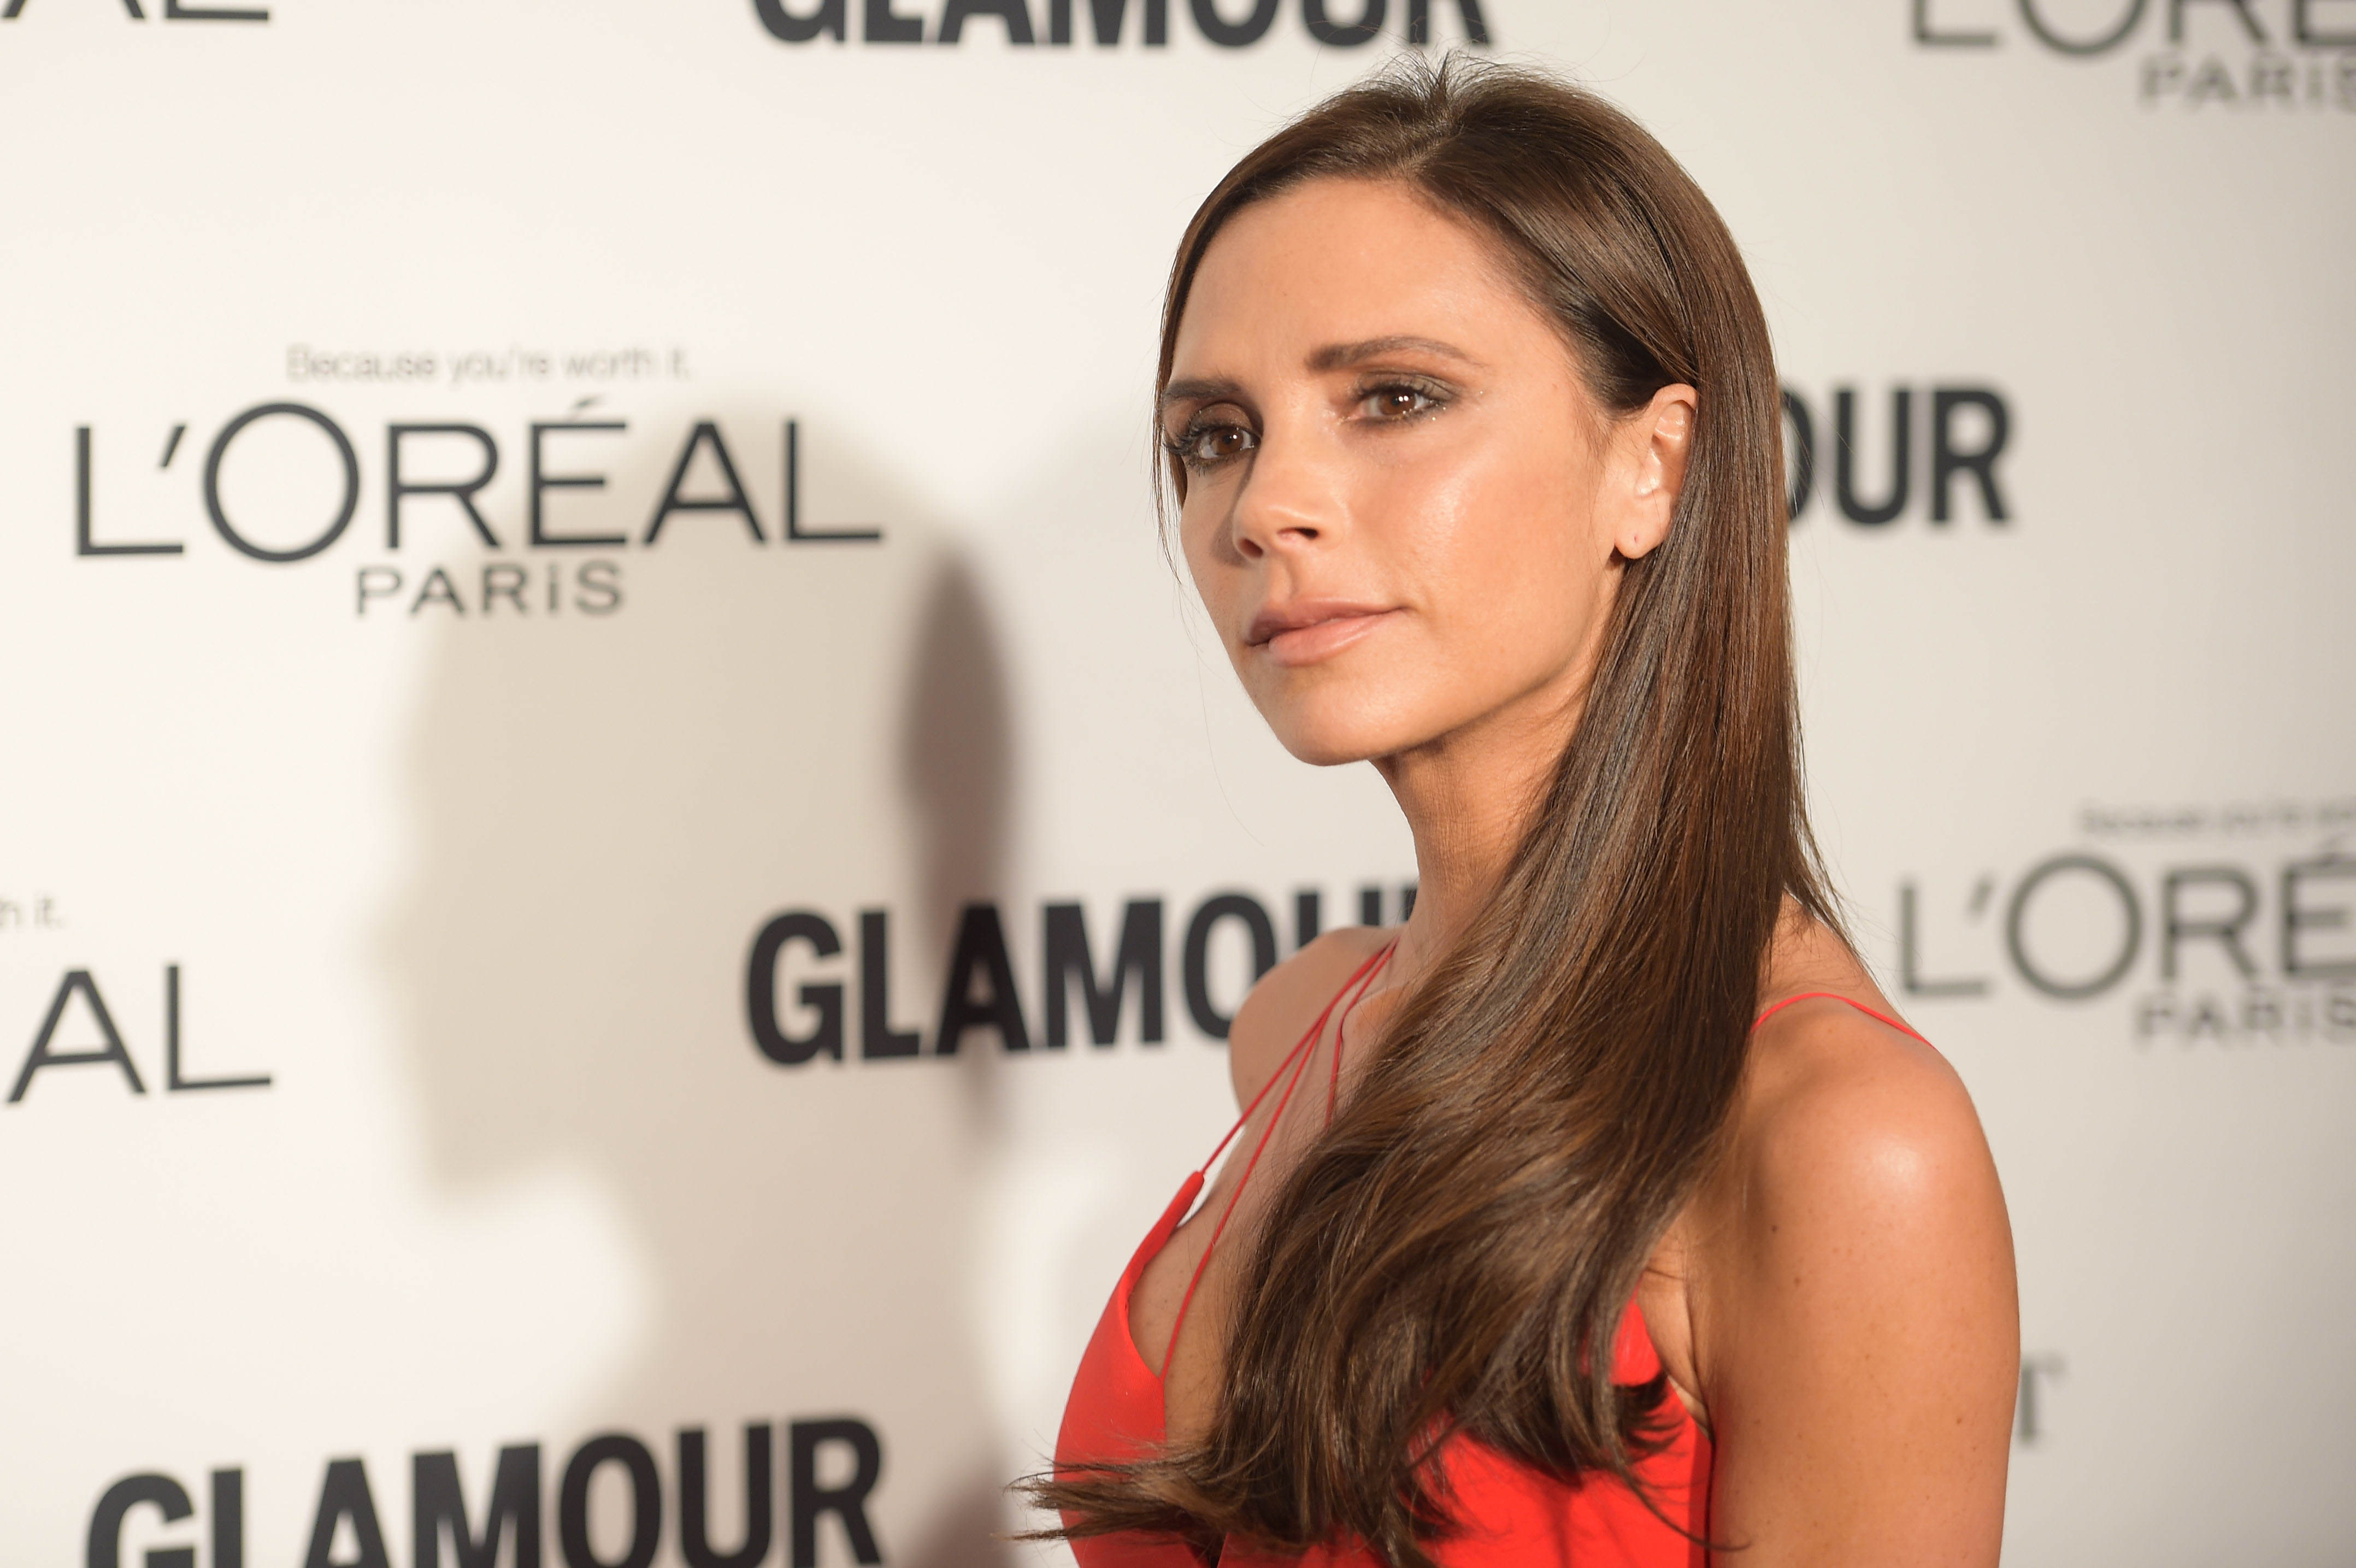 Victoria Beckham Makes Shocking Claim About Her Time In Spice Girls GettyImages 496450064